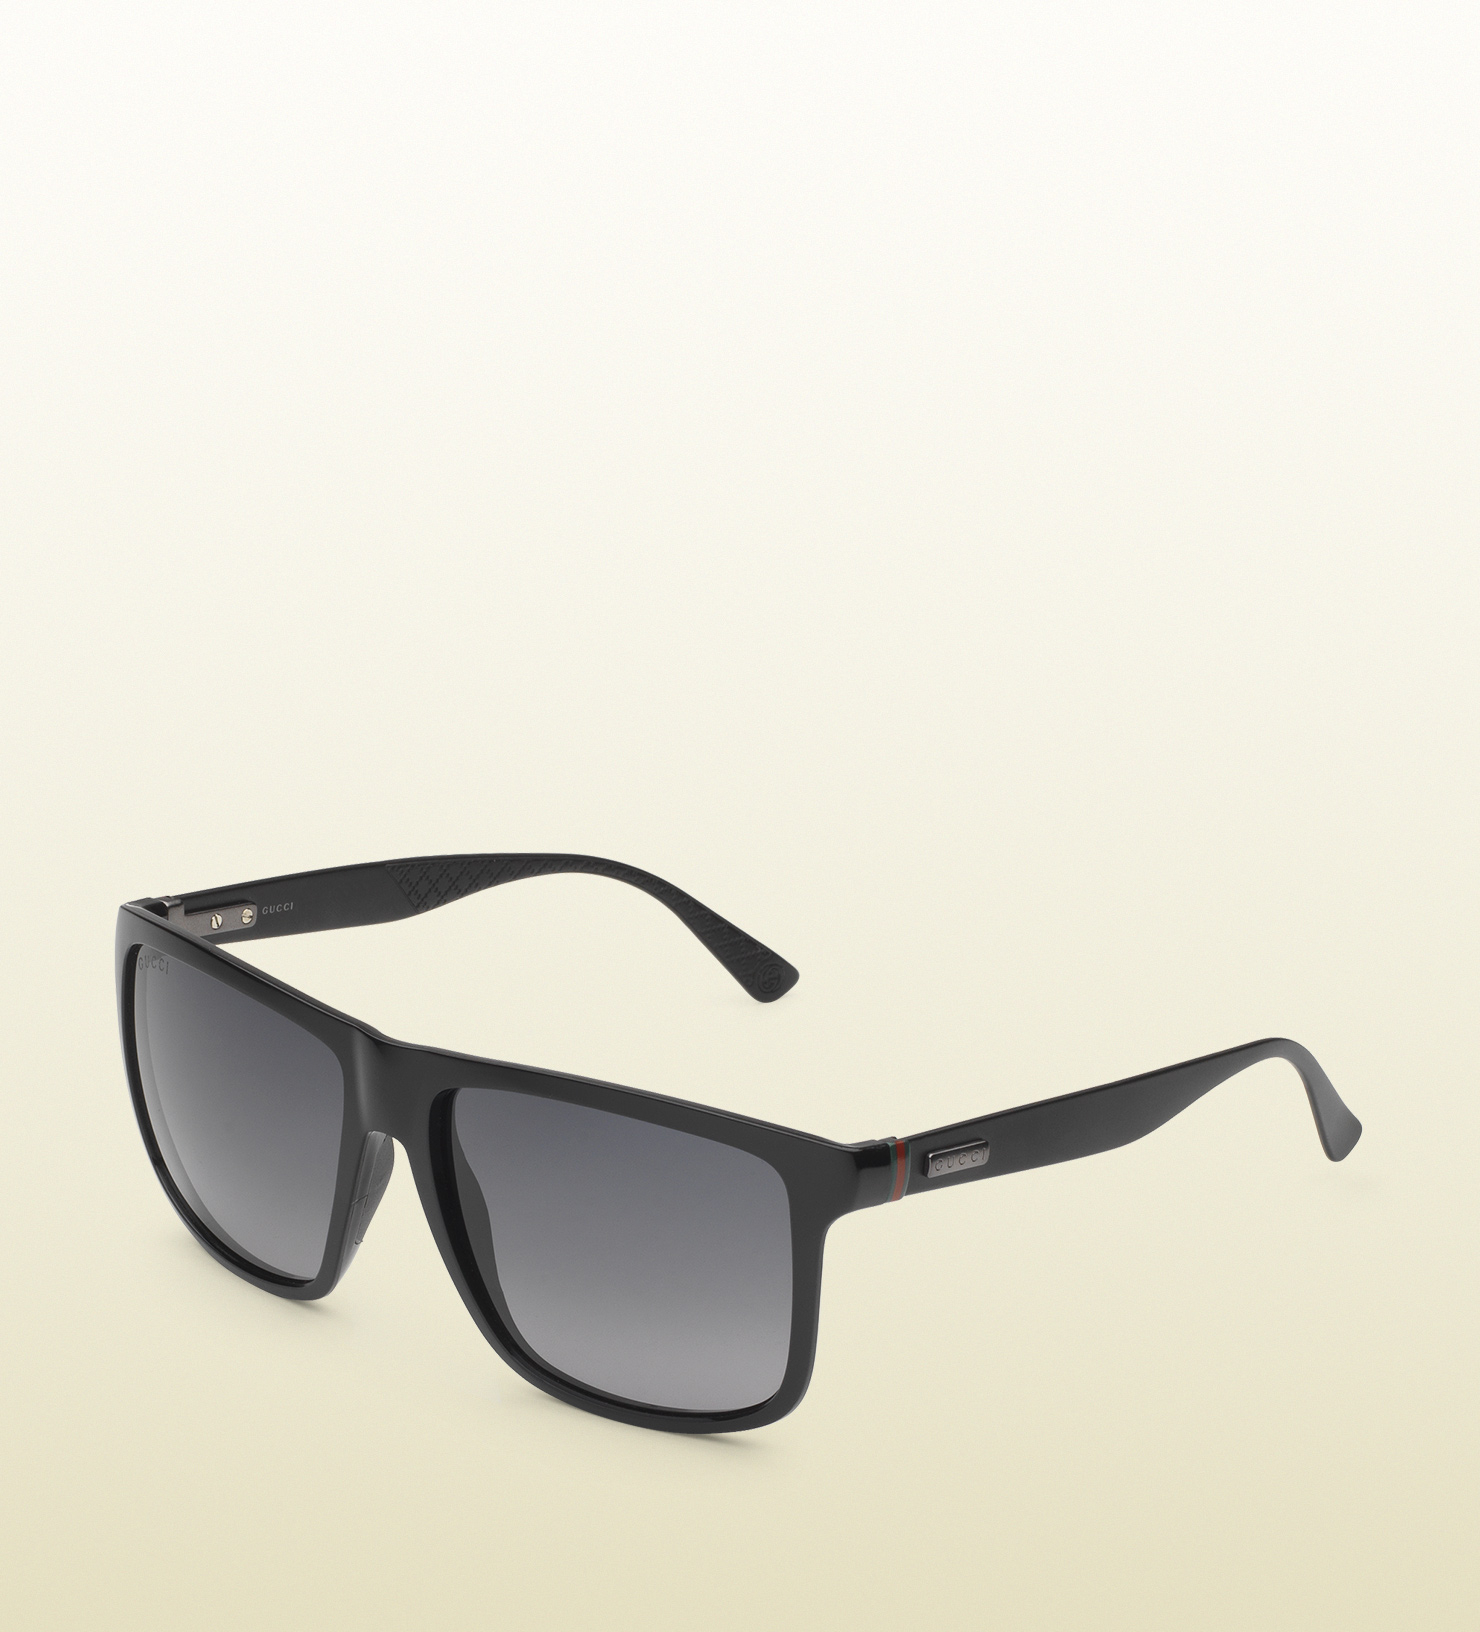 c9d8a72f6cd Lyst - Gucci Square-frame Aluminum And Injected Sunglasses in Black ...